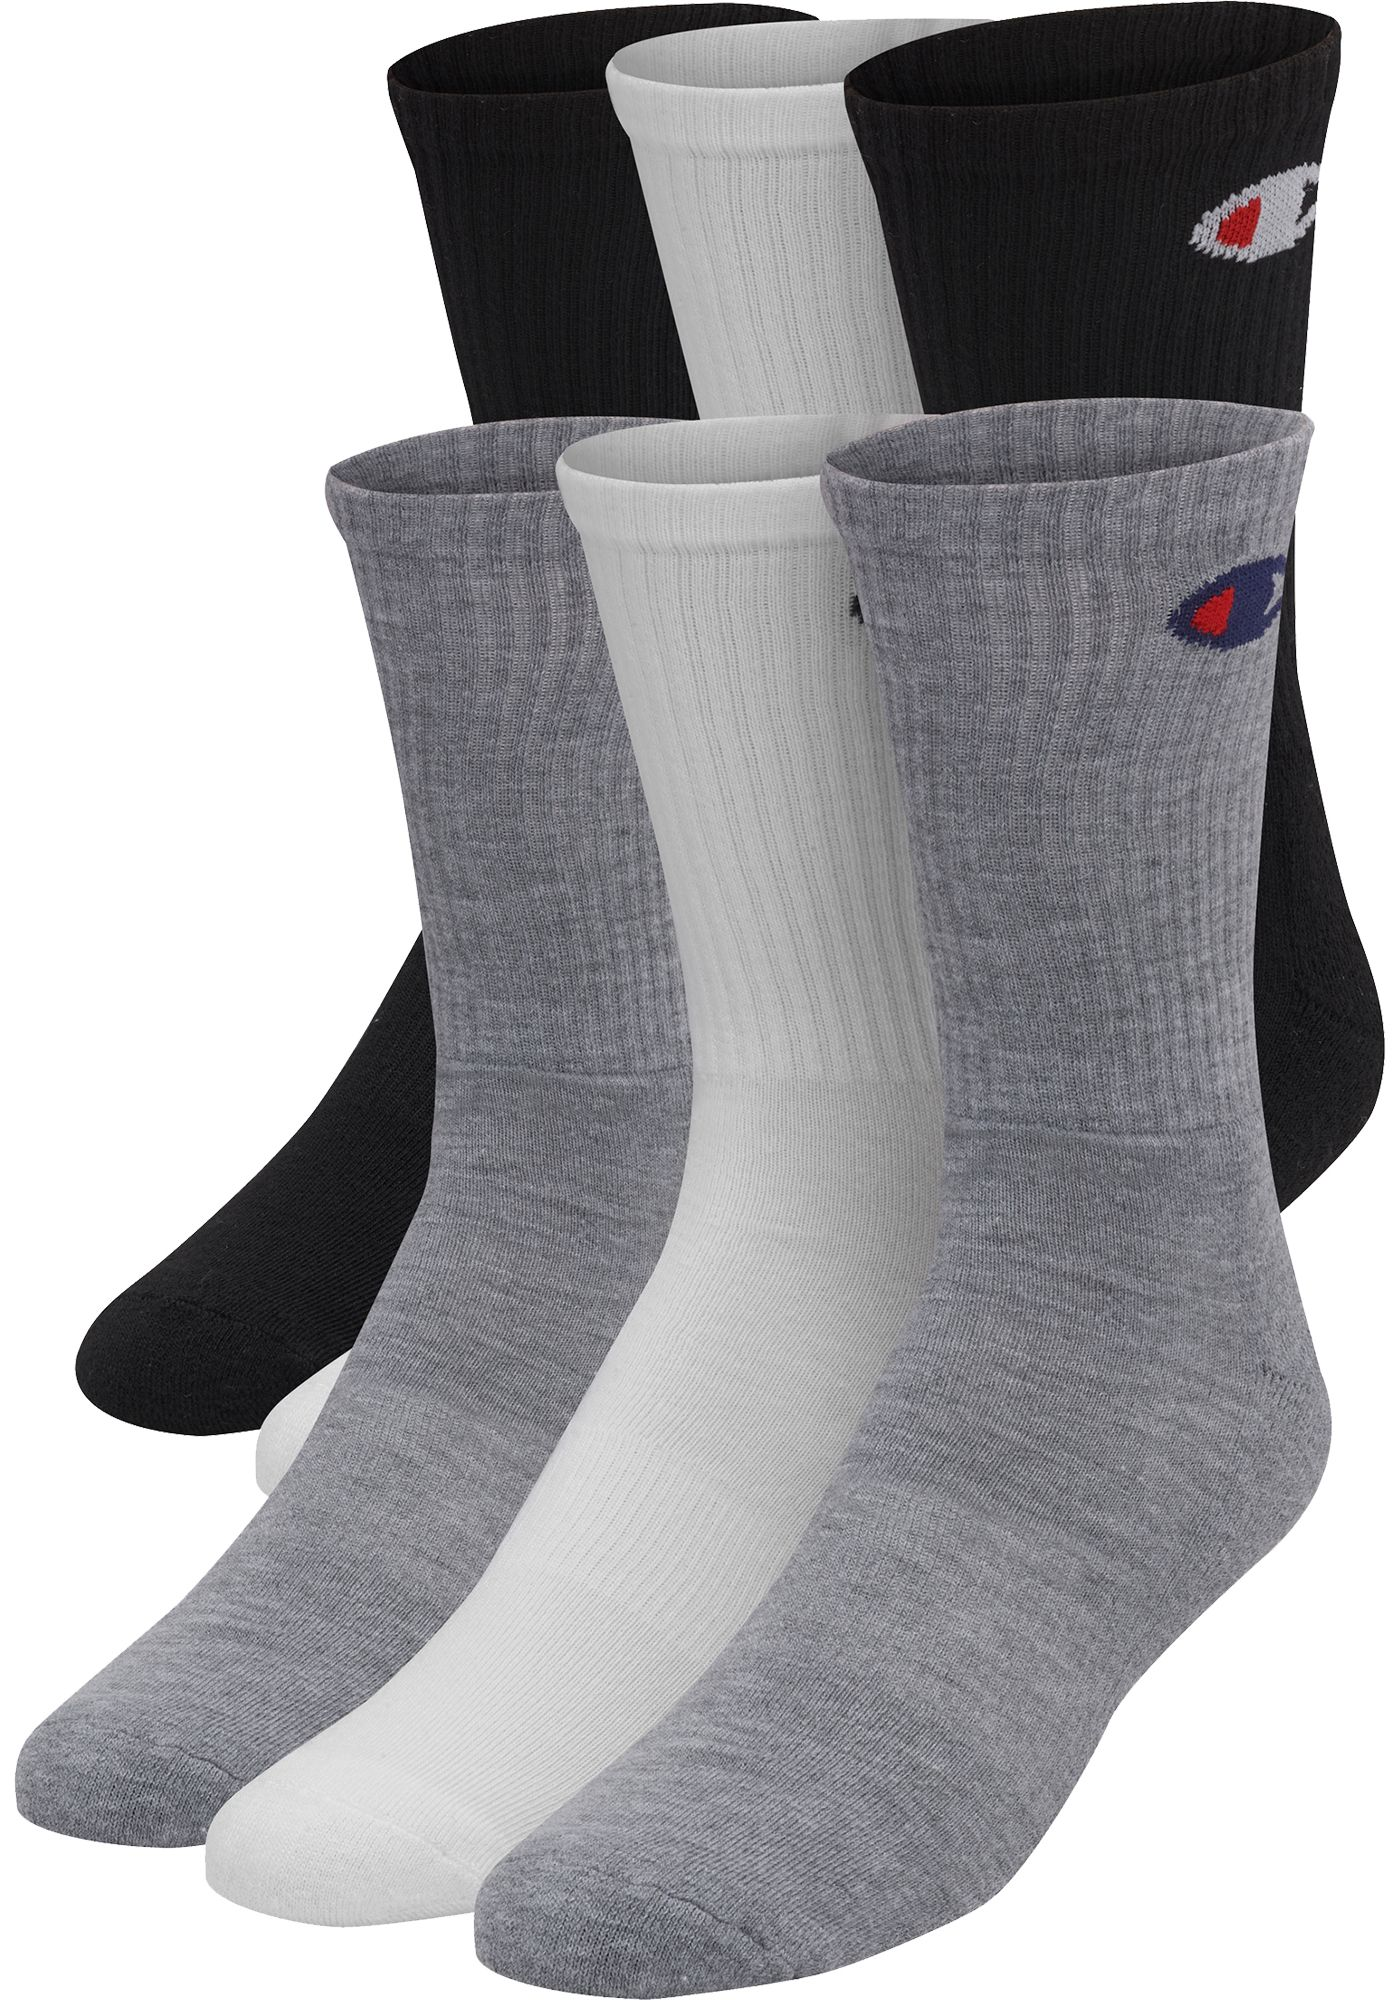 Champion Men's Crew Socks - 6 Pack